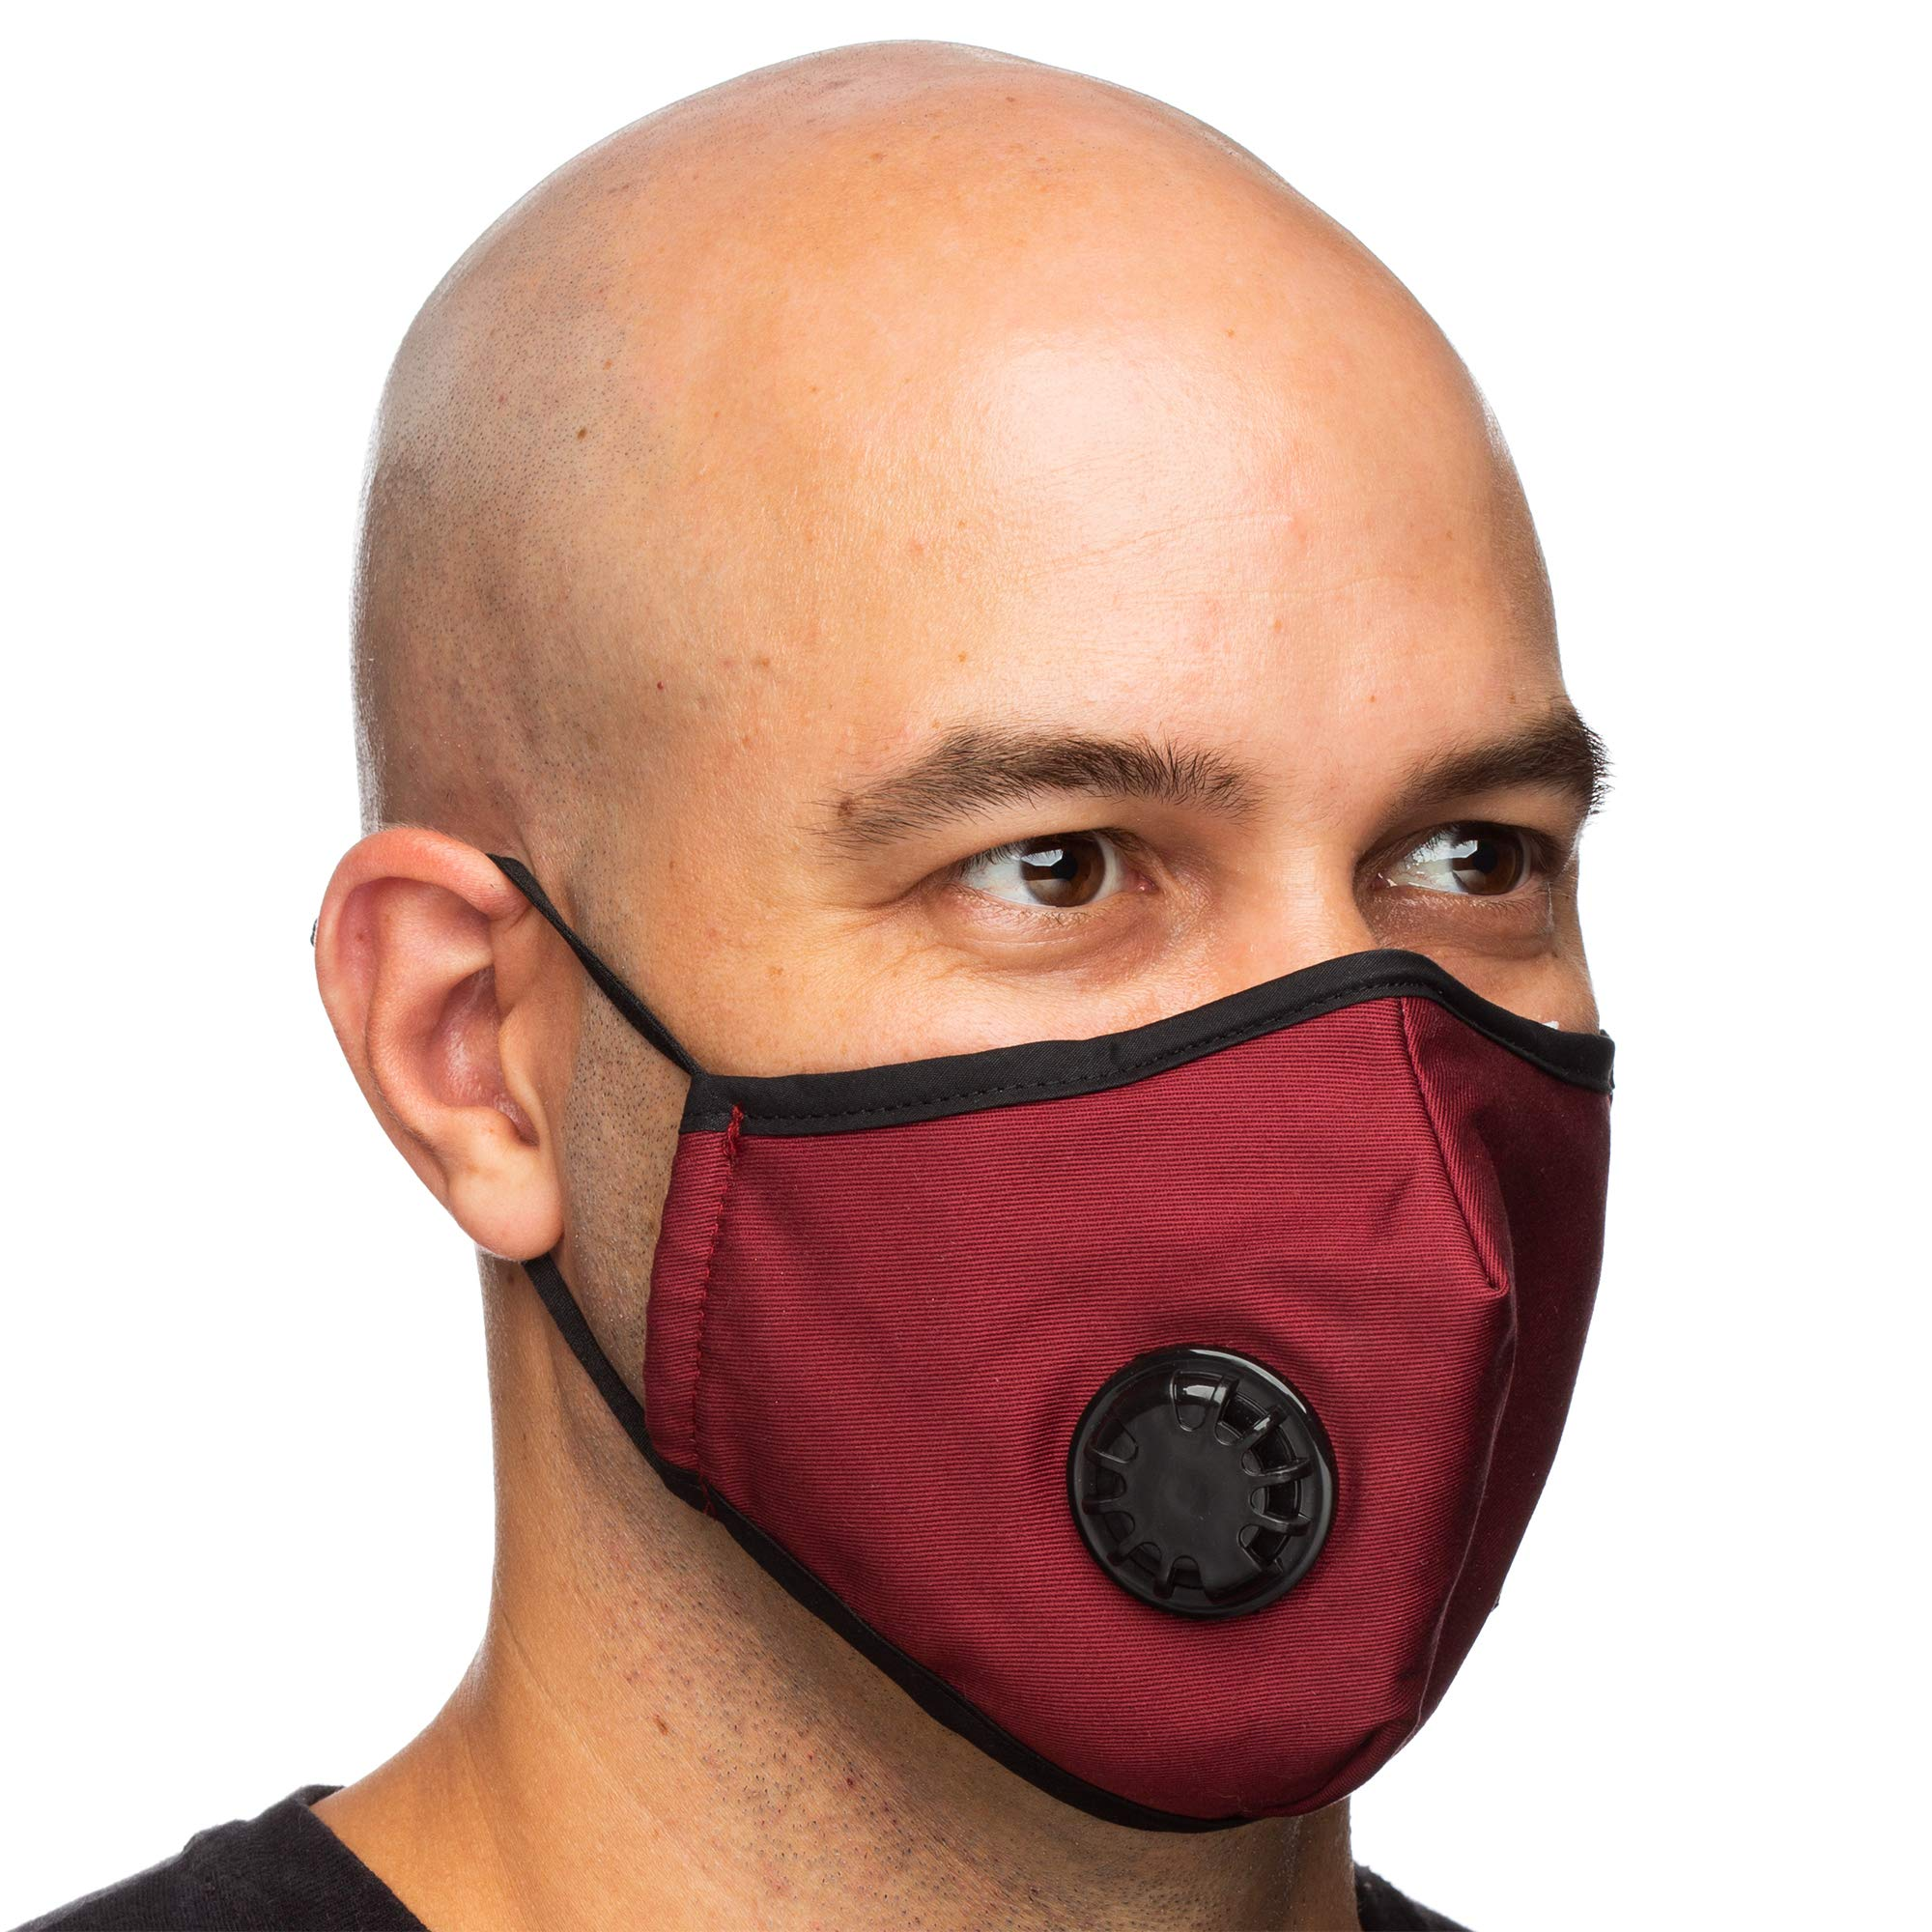 Debrief Me Military Grade N99 (4 Masks) Carbon Activated Anti Dust Face Mouth Cover Mask Respirator-Dustproof Anti-bacterial Washable -Reusable Respirator Comfy-Cotton(N99-4Color) by Debrief Me (Image #5)